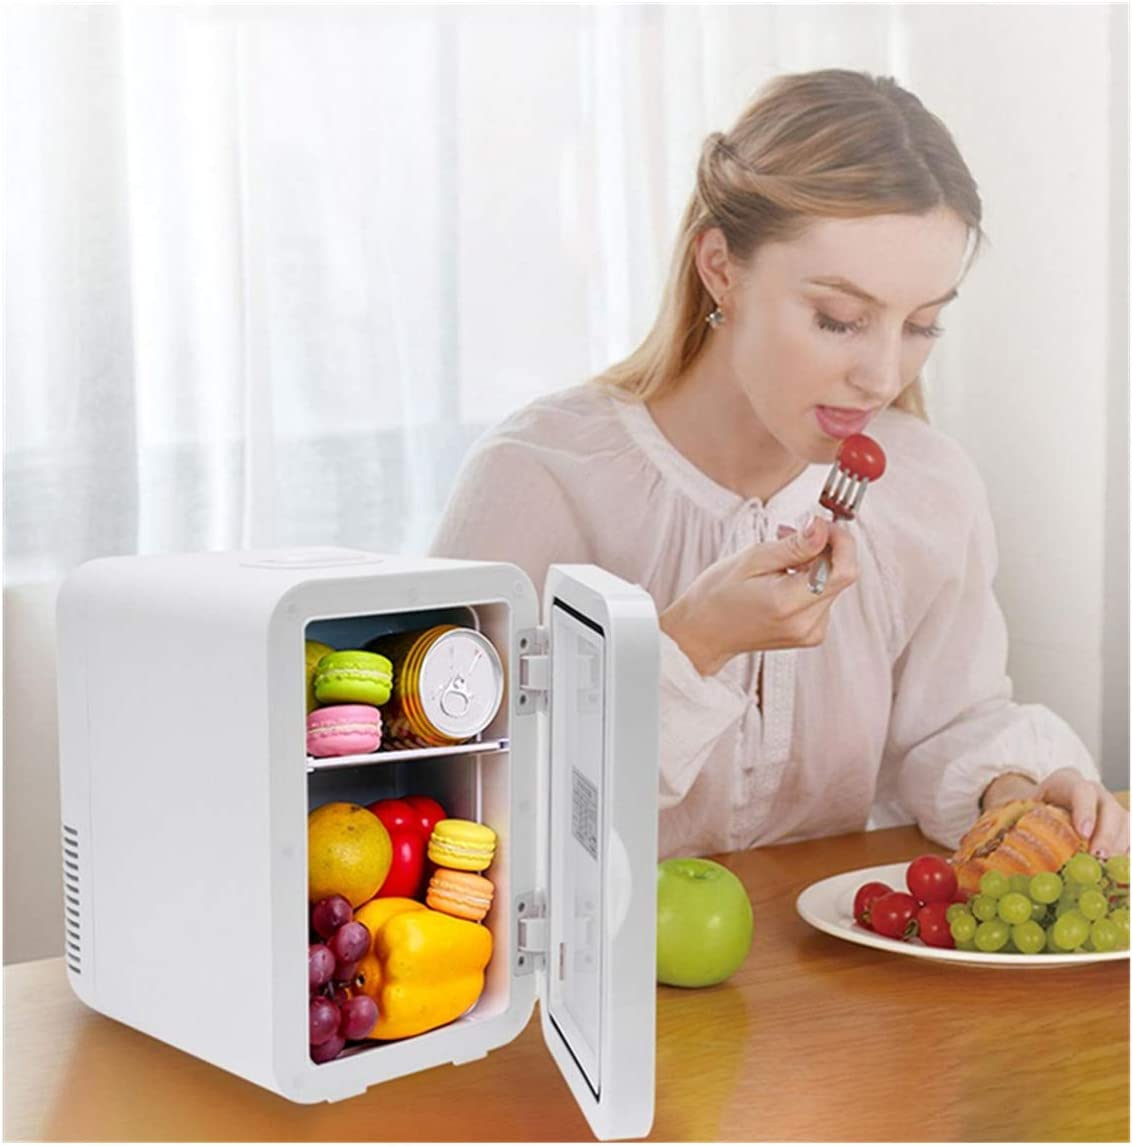 Hopeg US DELIVERY 8 Liter White Mini Fridge, Portable Cooler and Warmer Compact Refrigerator with Car Charger Micro Fridge for Camping Bedroom,Office,Skincare,Breastmilk,Travel and Car